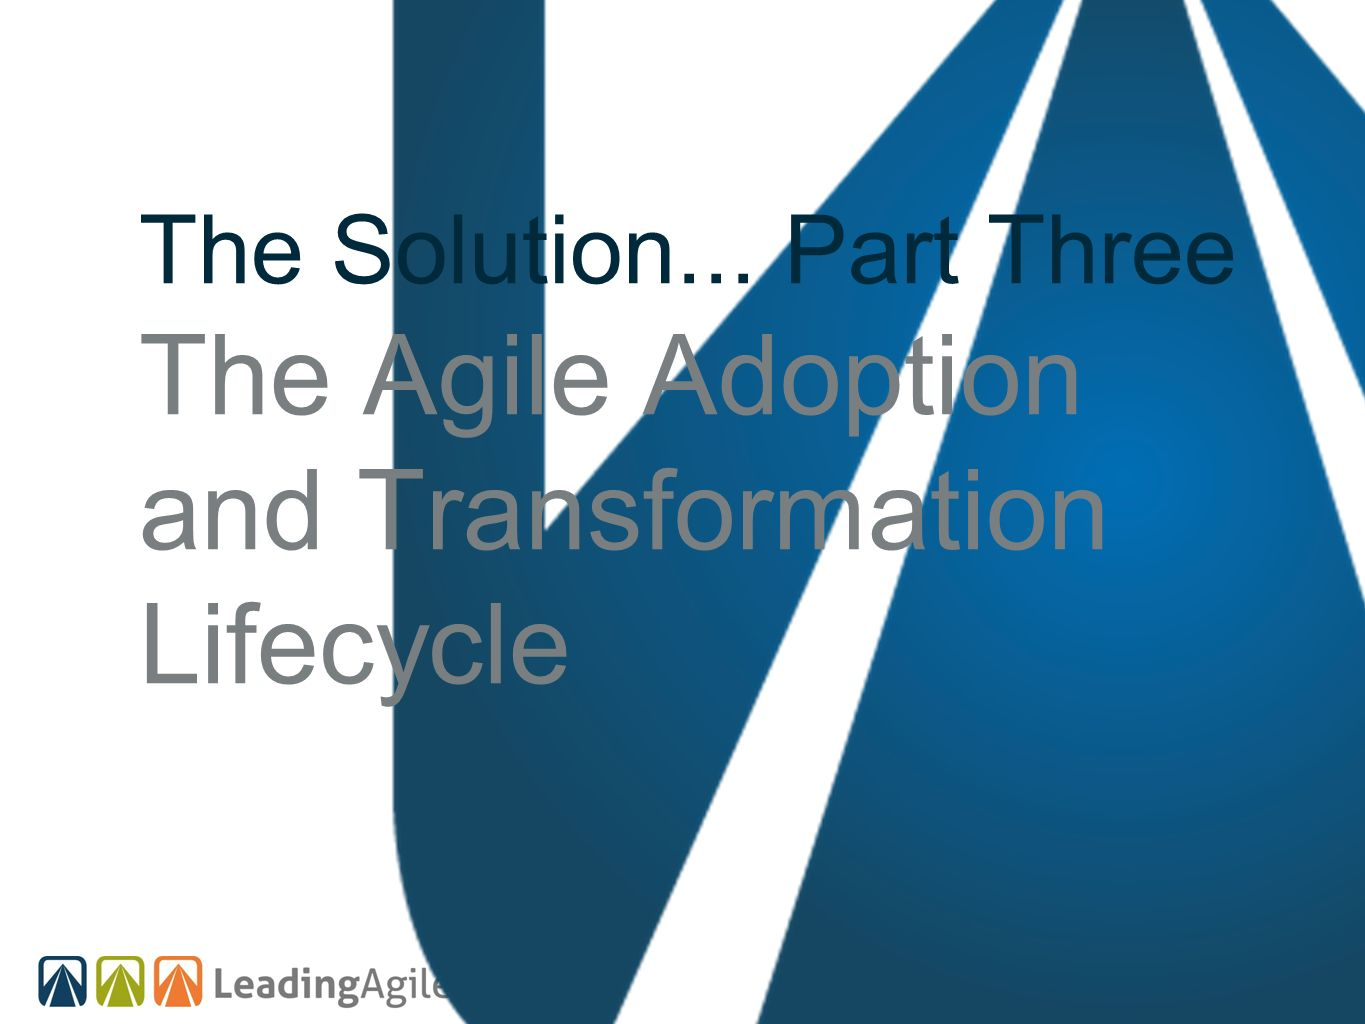 The Solution... Part Three The Agile Adoption and Transformation Lifecycle